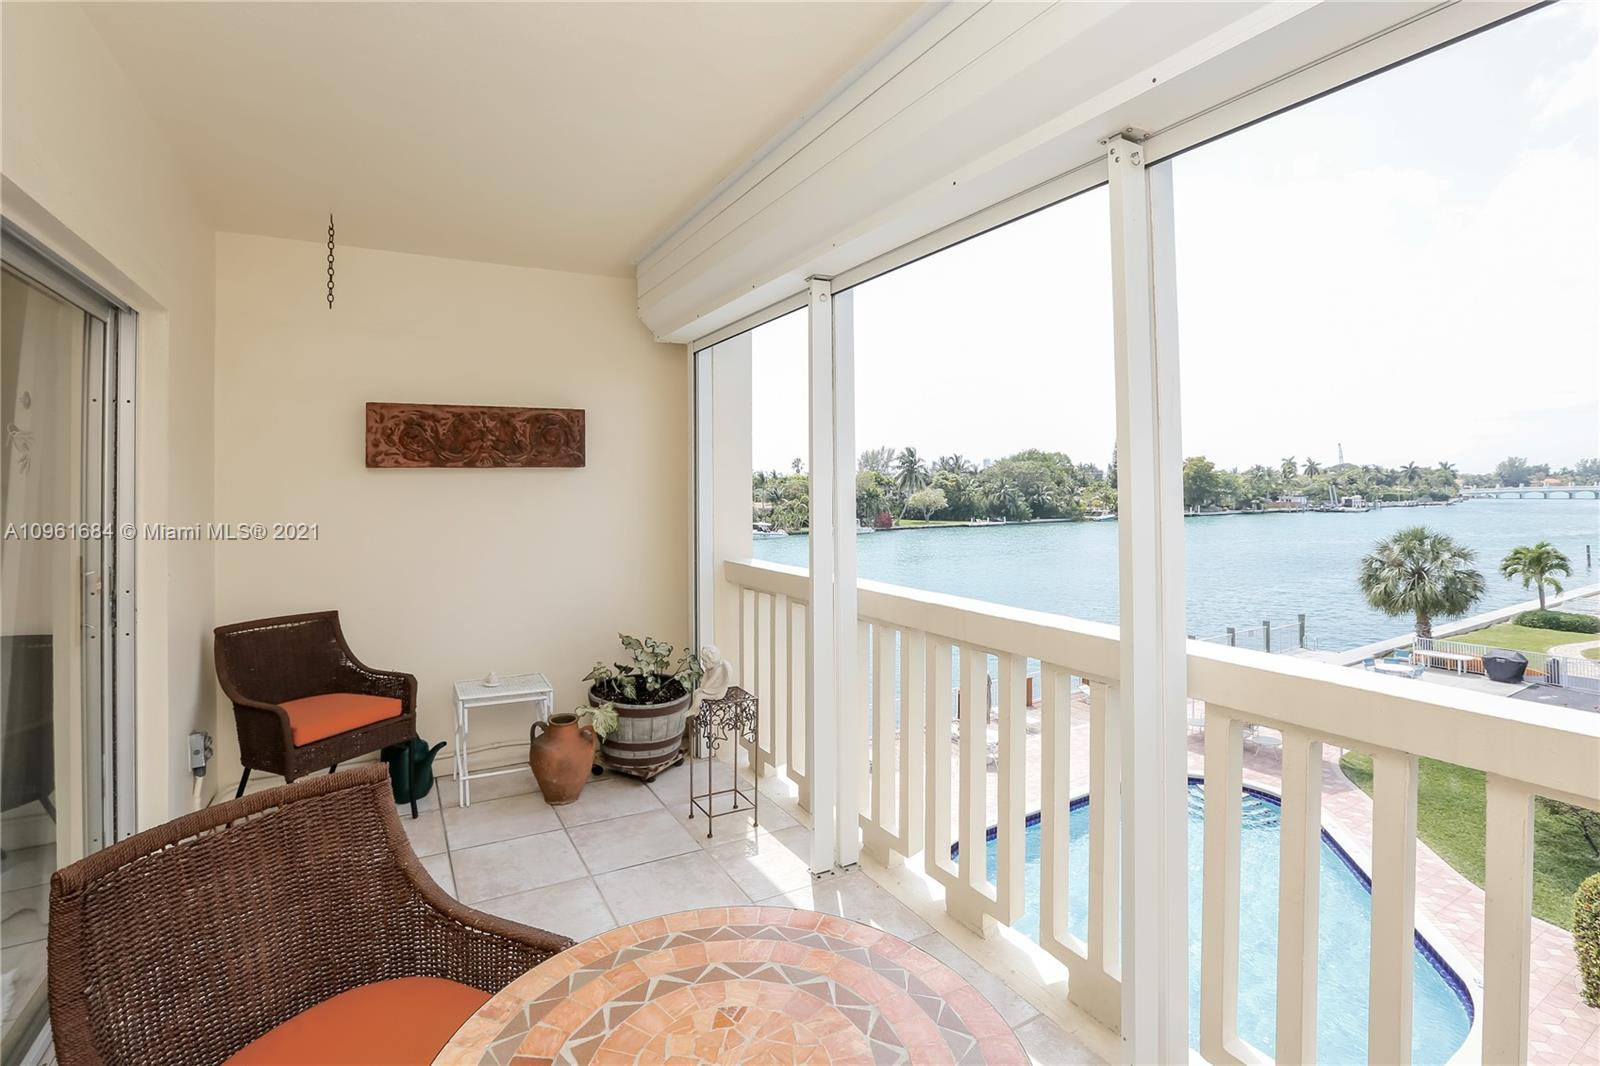 Spectacular waterfront corner unit with over 1700 sq ft of living space overlooking the iconic Indian Creek Waterway and Bridge. This perfect bayfront home features beautifully updated marble baths, electric hurricane shutters, large kitchen and grand living spaces. Enjoy water views from every window and amazing sunrises. Building amenities include heated pool, gym, private parking and oversized climate control storage. HOA includes high speed internet and cable. Located within walking distance to beaches, Bal Harbour Shops, fine dining, houses of worship and top rated K-8 school. NO LONGER 55+ COMMUNITY. NO AGE RESTRICTION.